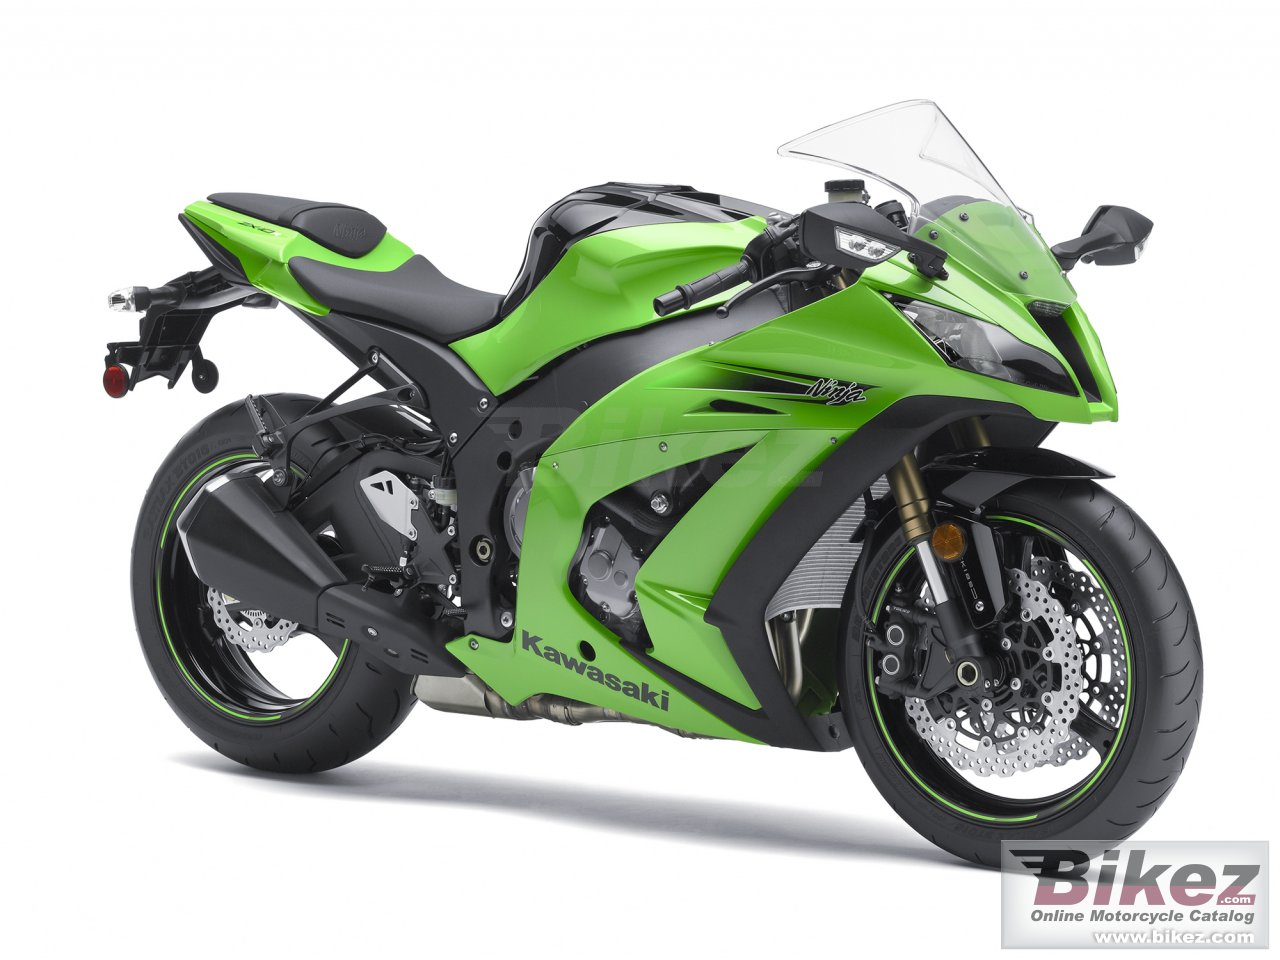 Big Kawasaki ninja zx -10r abs picture and wallpaper from Bikez.com